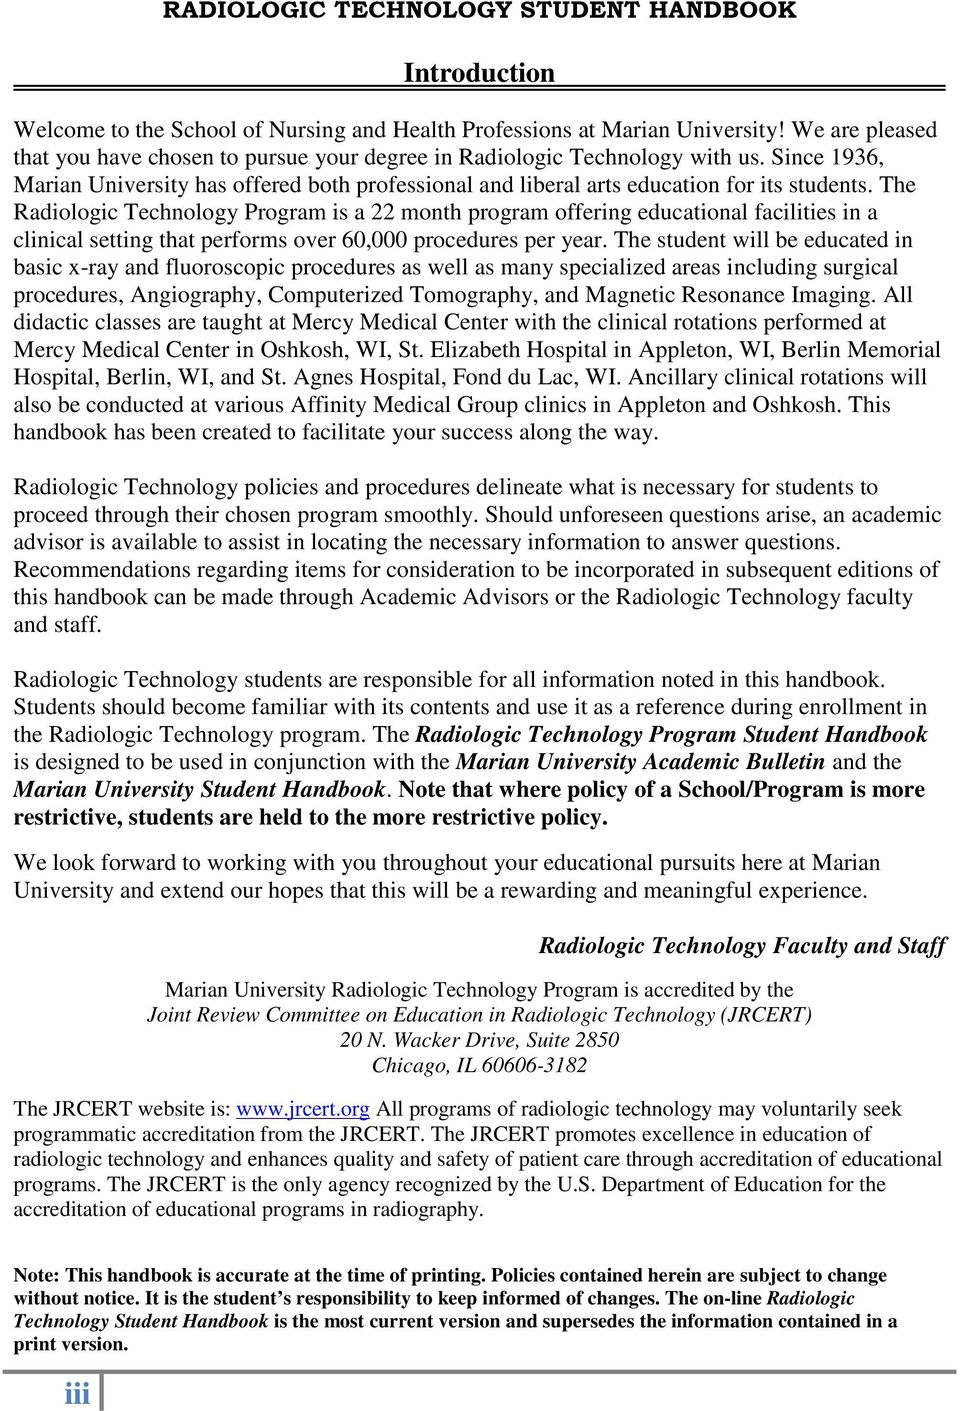 The Radiologic Technology Program is a 22 month program offering educational facilities in a clinical setting that performs over 60,000 procedures per year.